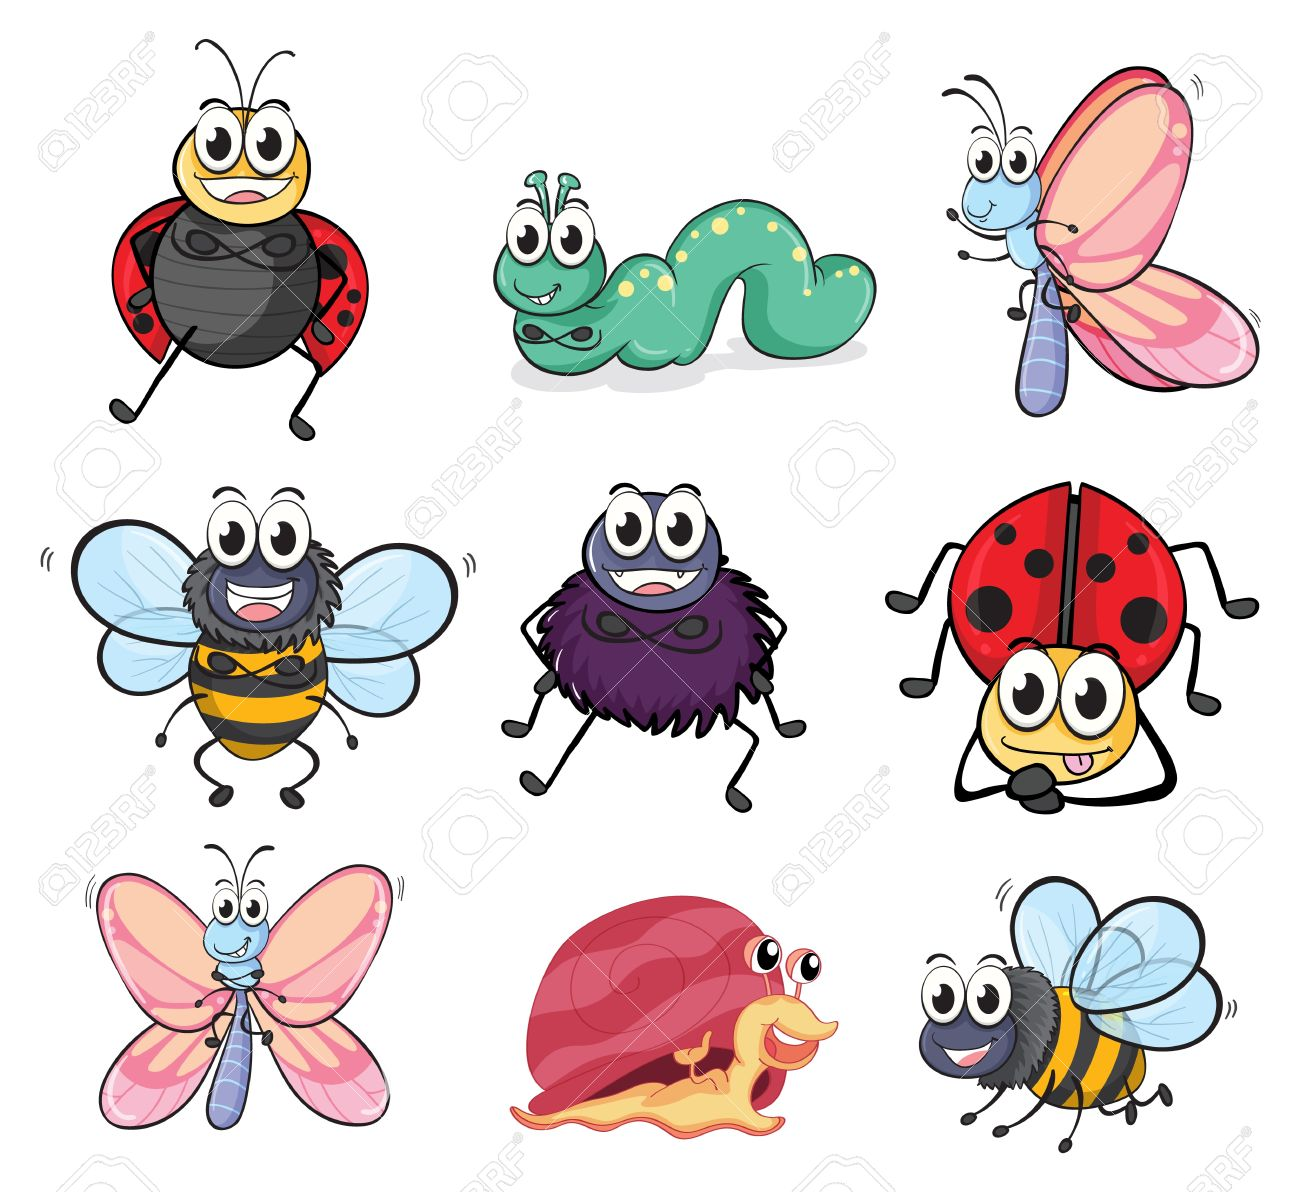 Illustration of various insects and animals on a white background Stock Vector - 17161616